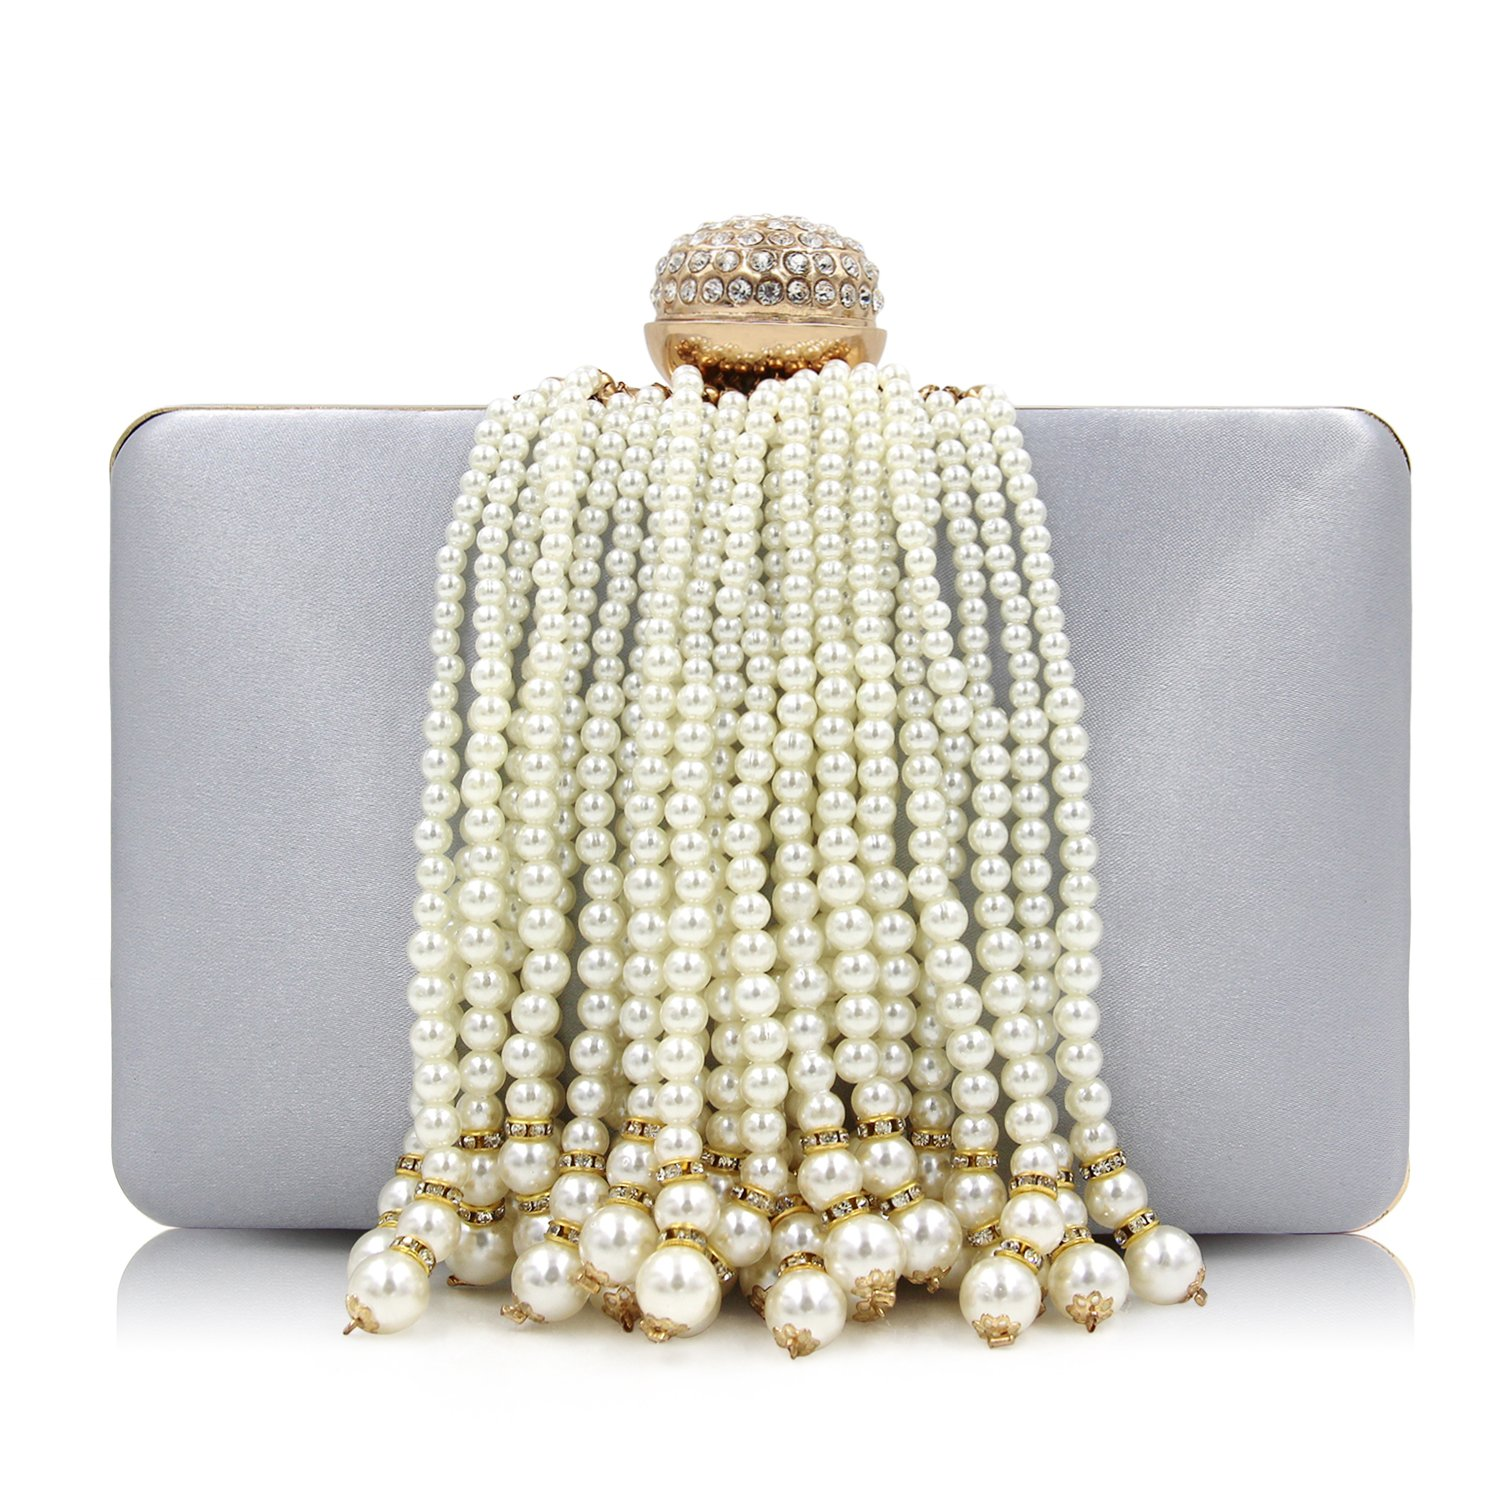 Milisente Women Pearl Clutches Beaded Tassel Evening Bag Satin Clutch Purse (Silver)